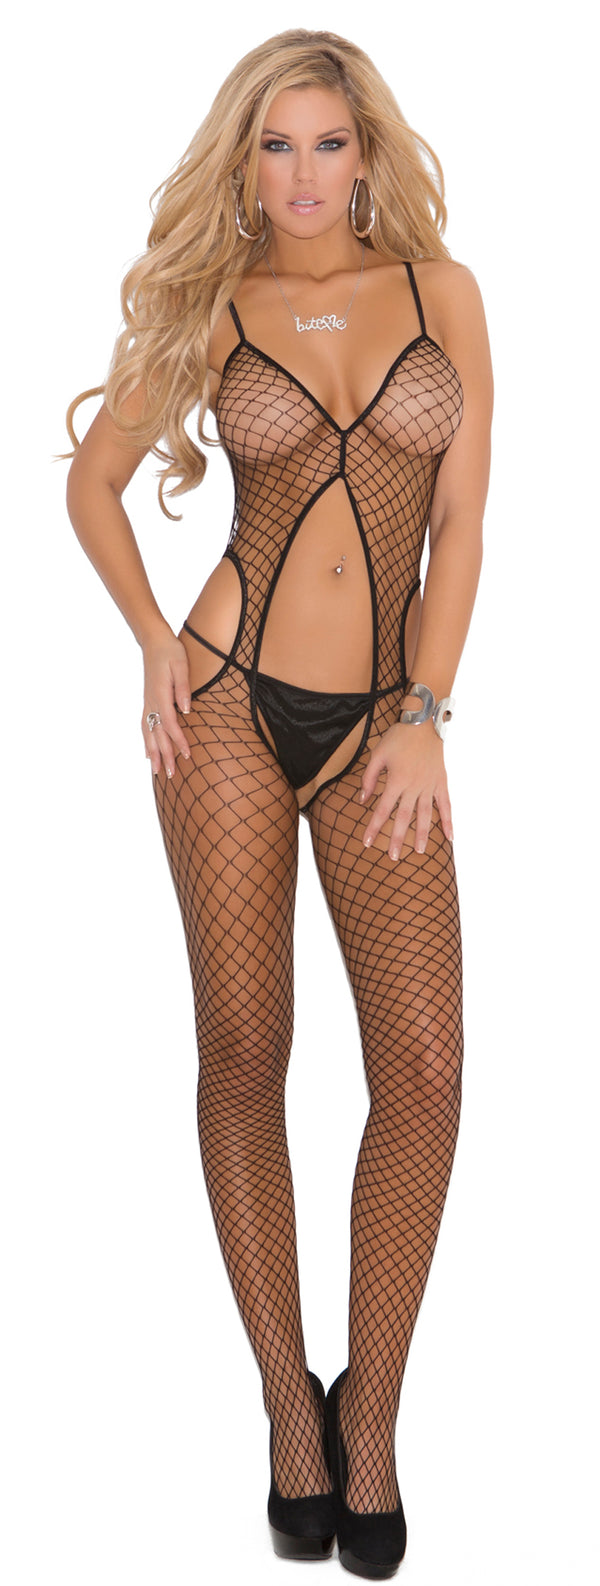 Black Diamond Net Crotchless Suspender Bodystocking Front EM1673